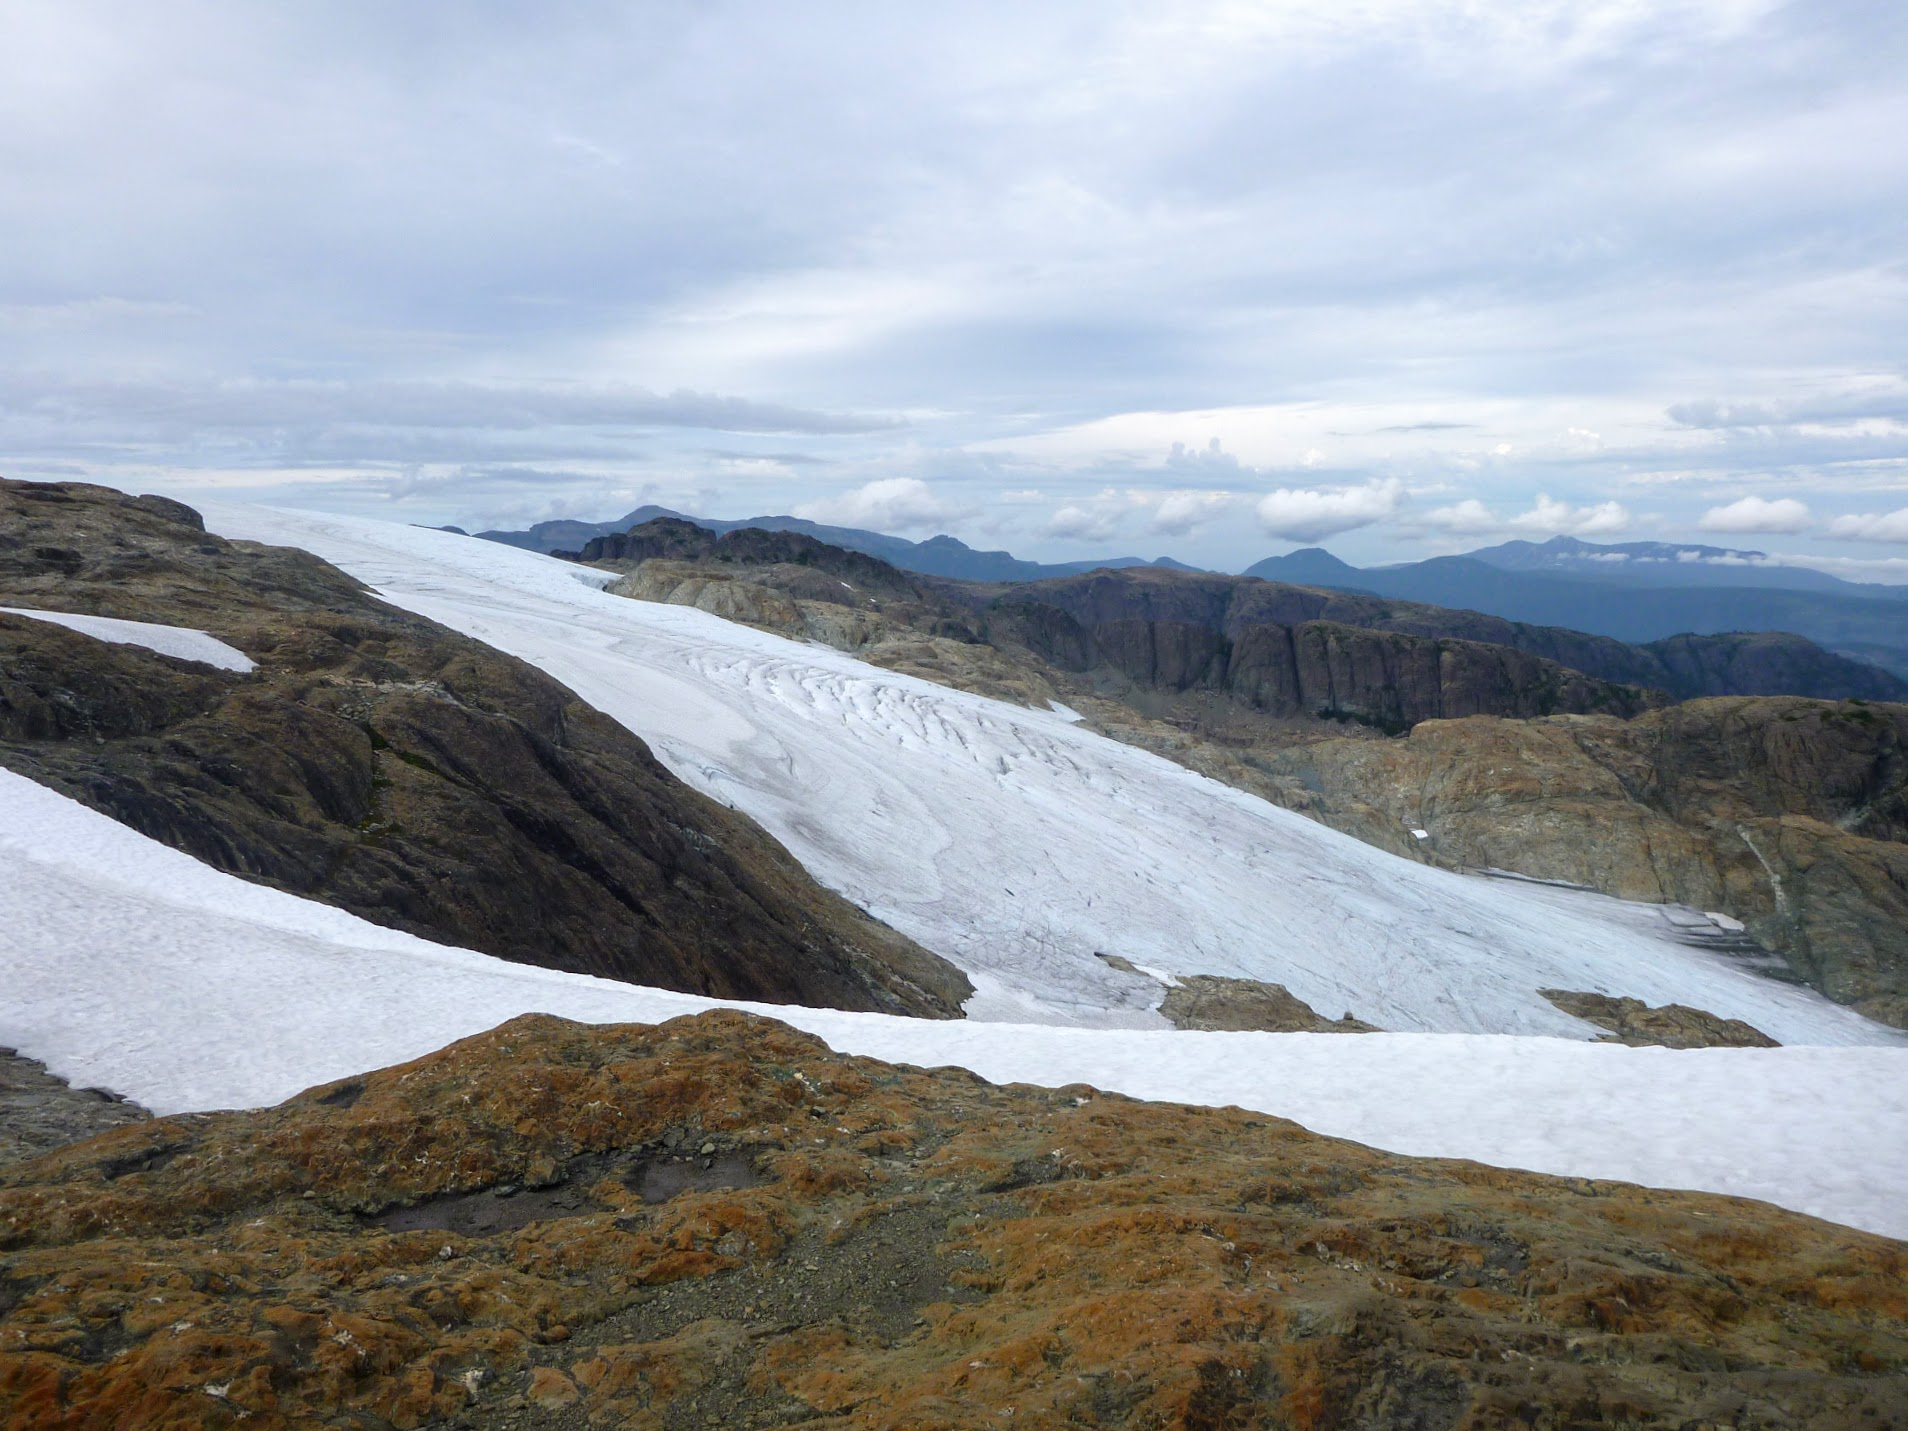 The steeper part of Comox Glacier